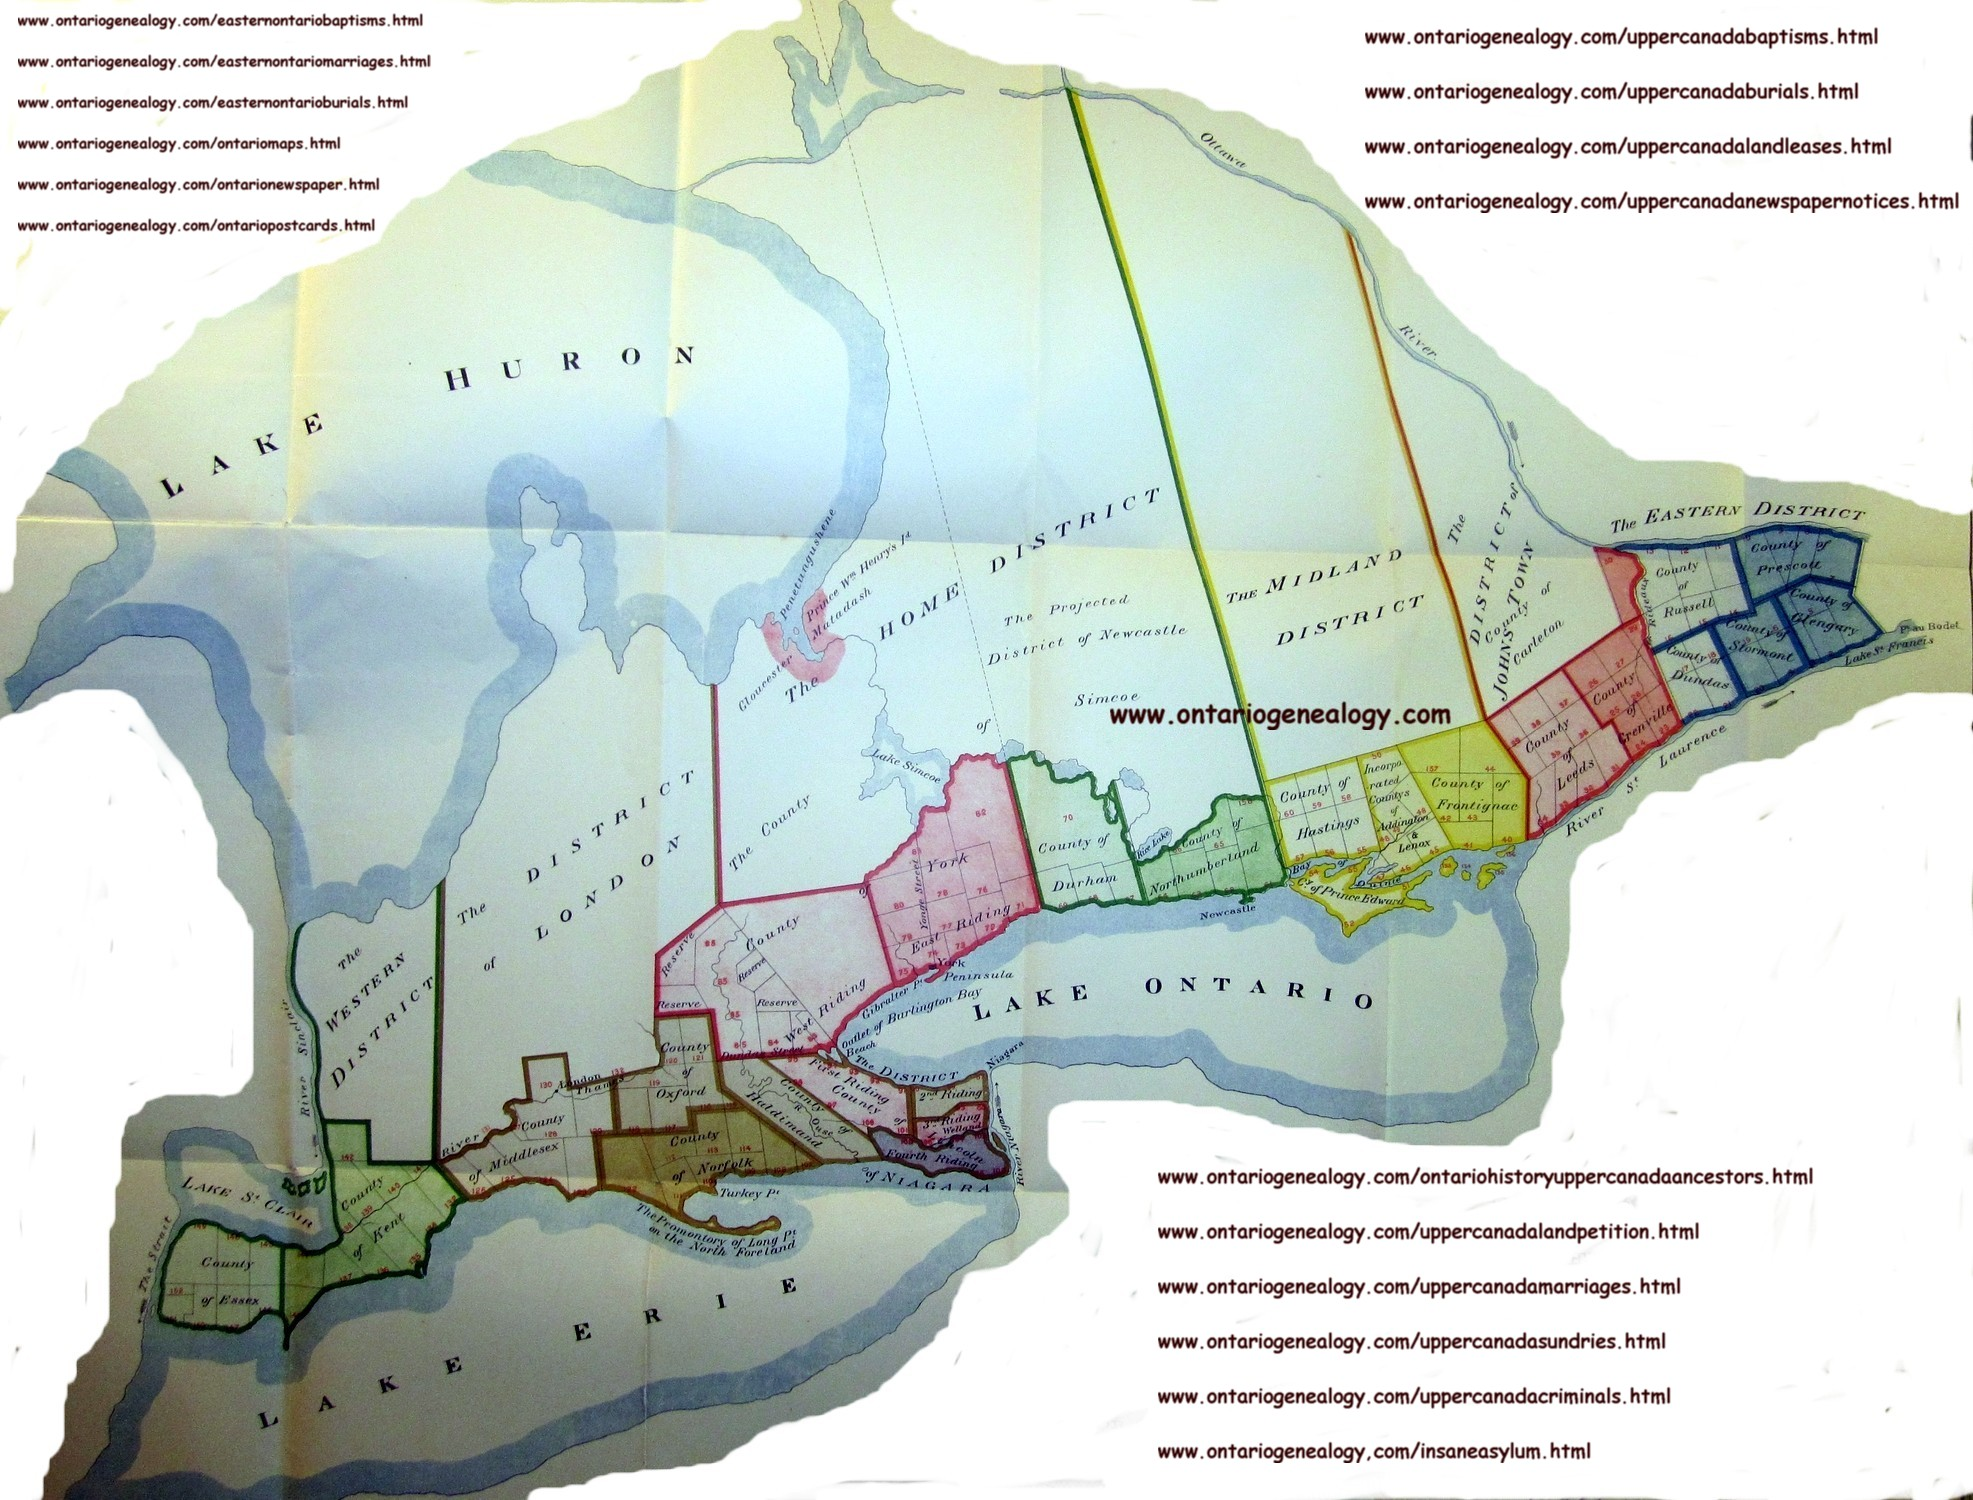 Map Of Upper Canada 1800 Upper Canada (Ontario) Historical Map Collection